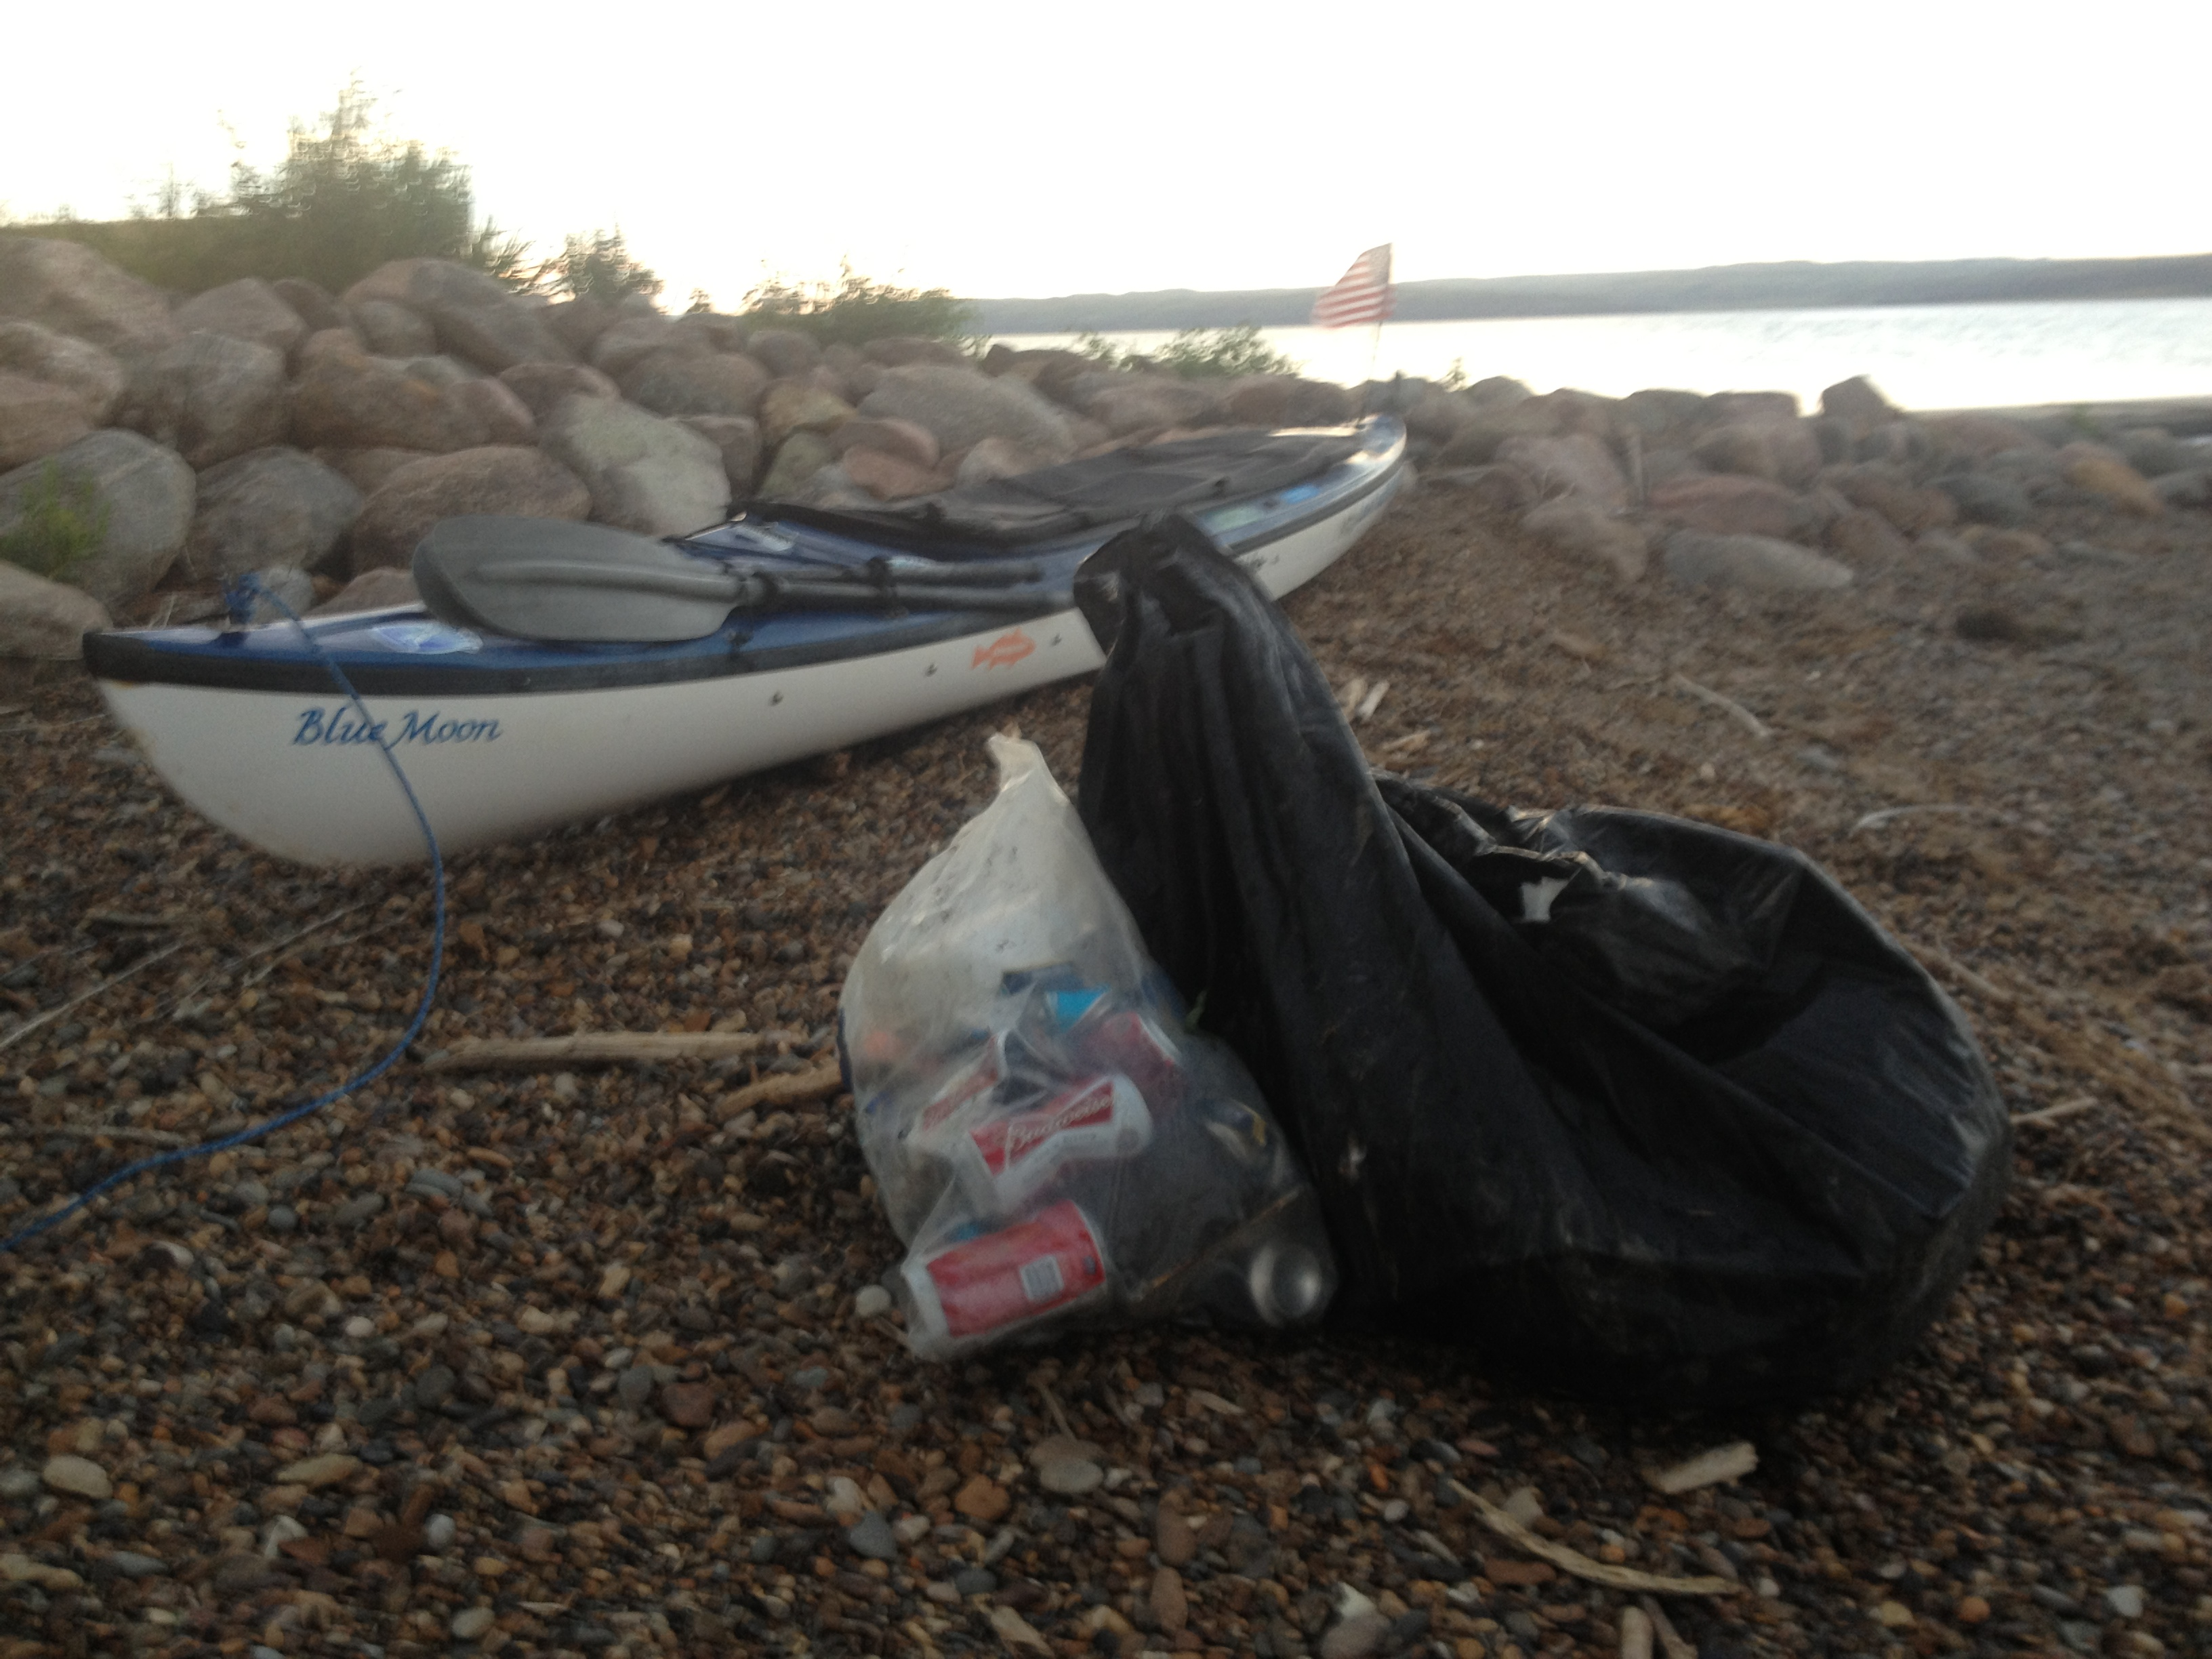 Not a whole lot to do once I set up camp at the Little Bend Boat Ramp, so I picked up trash.